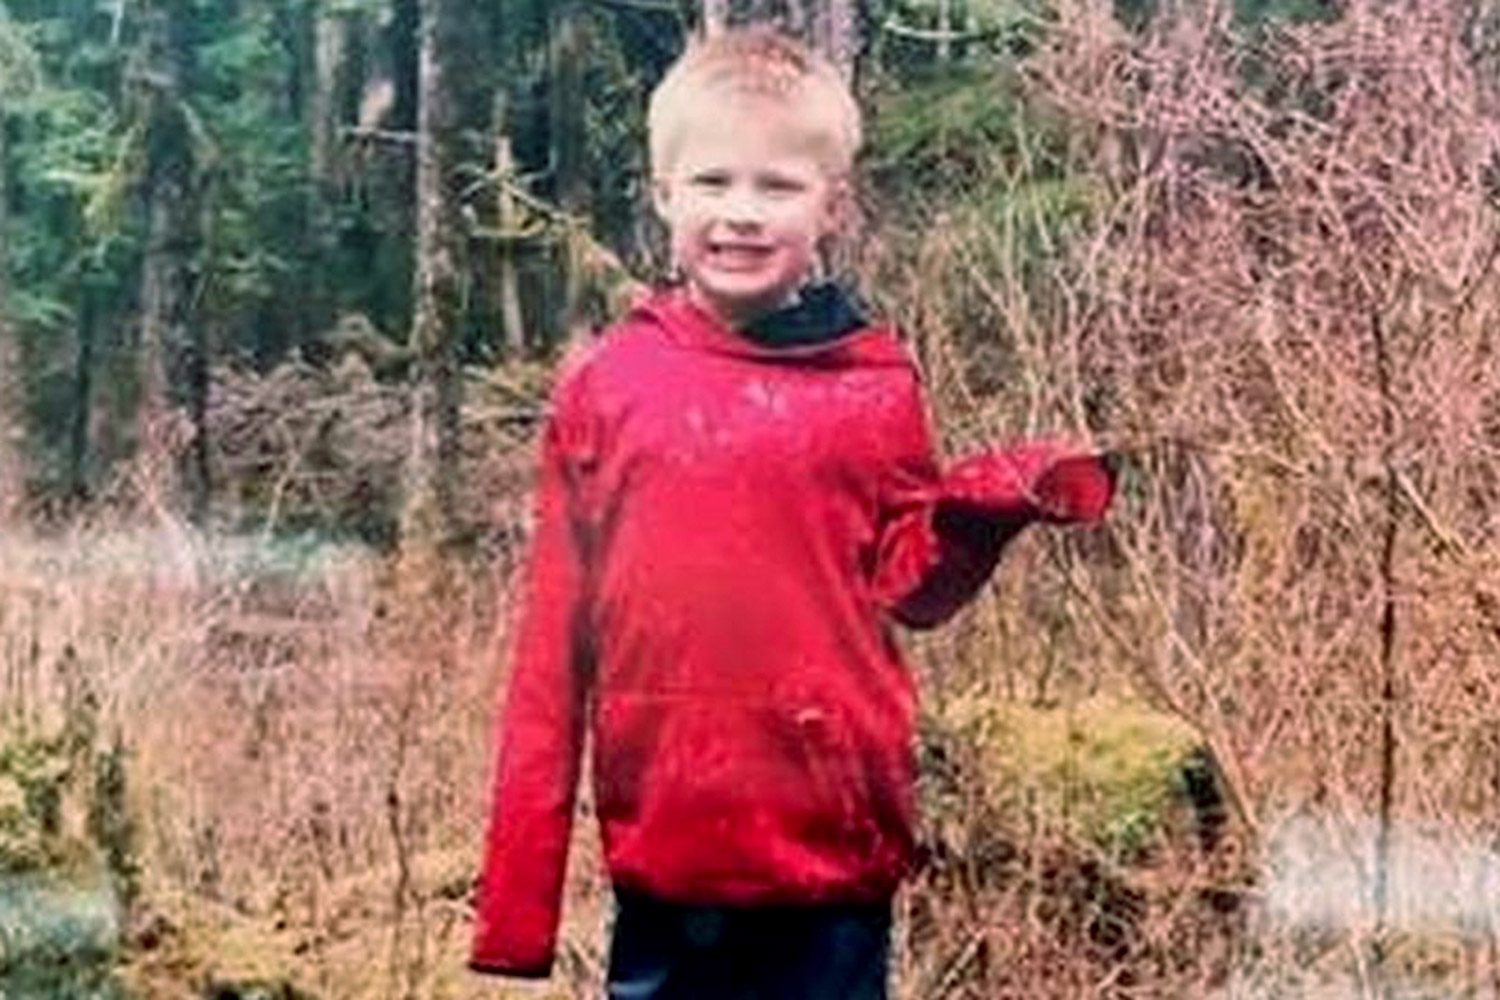 Boy, 5, Found Dead 3 Days After Mom Tried to Find Help After They Got Lost on Hike